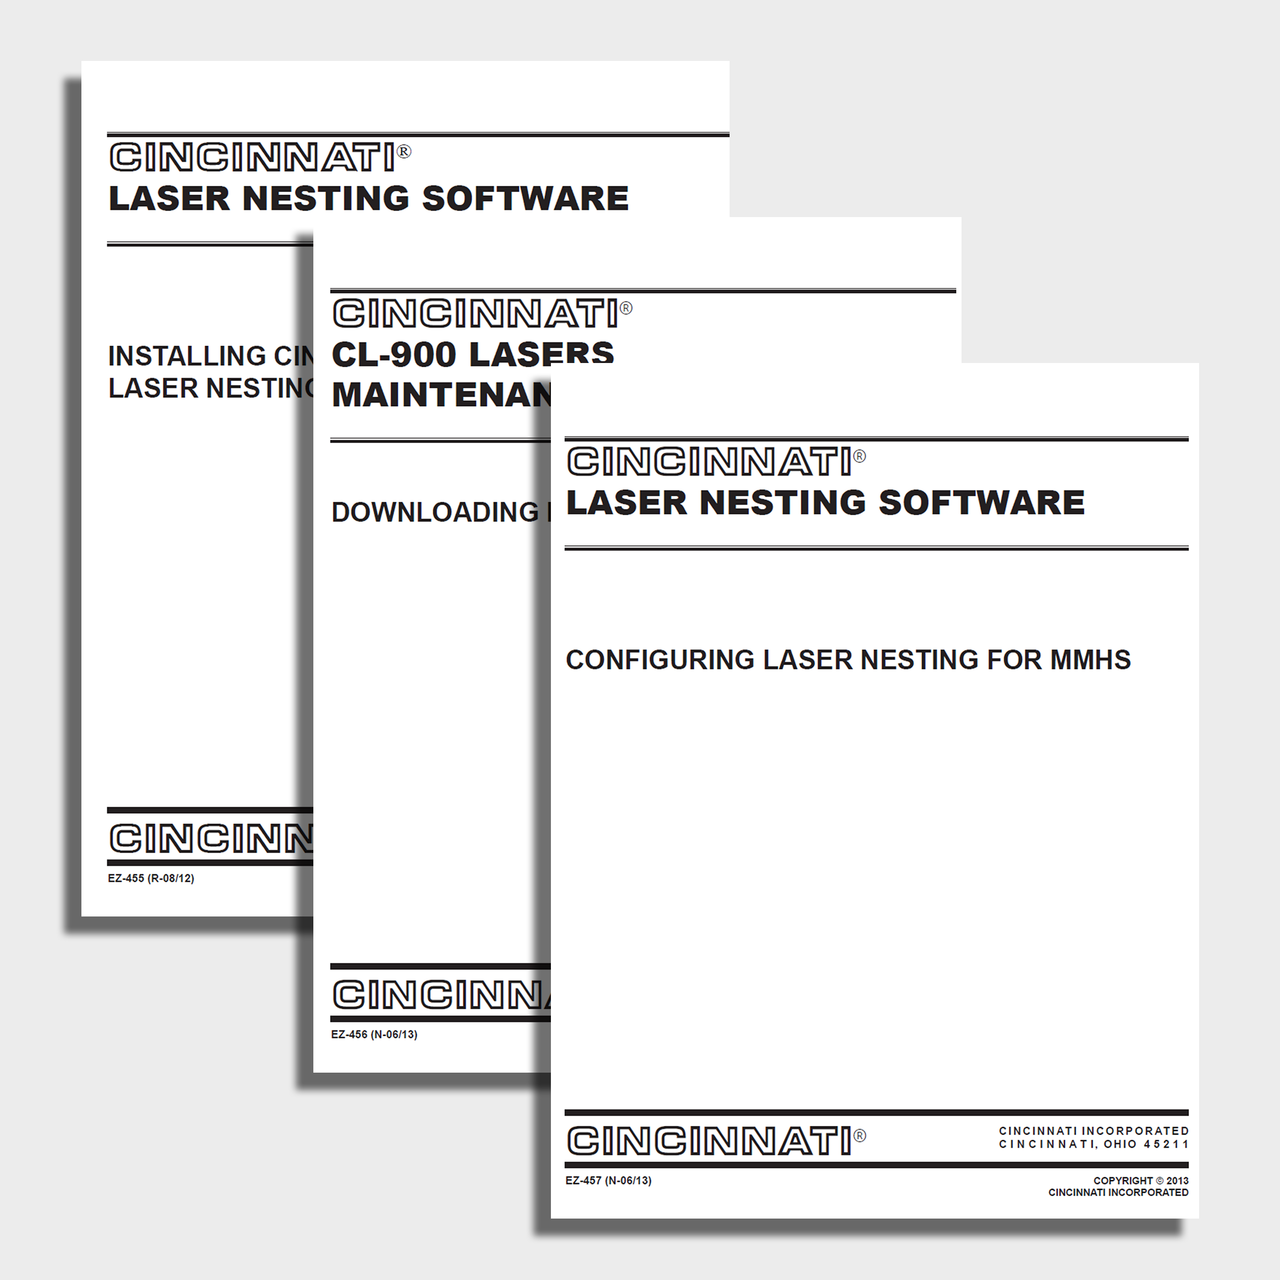 Laser Nesting Software Manual